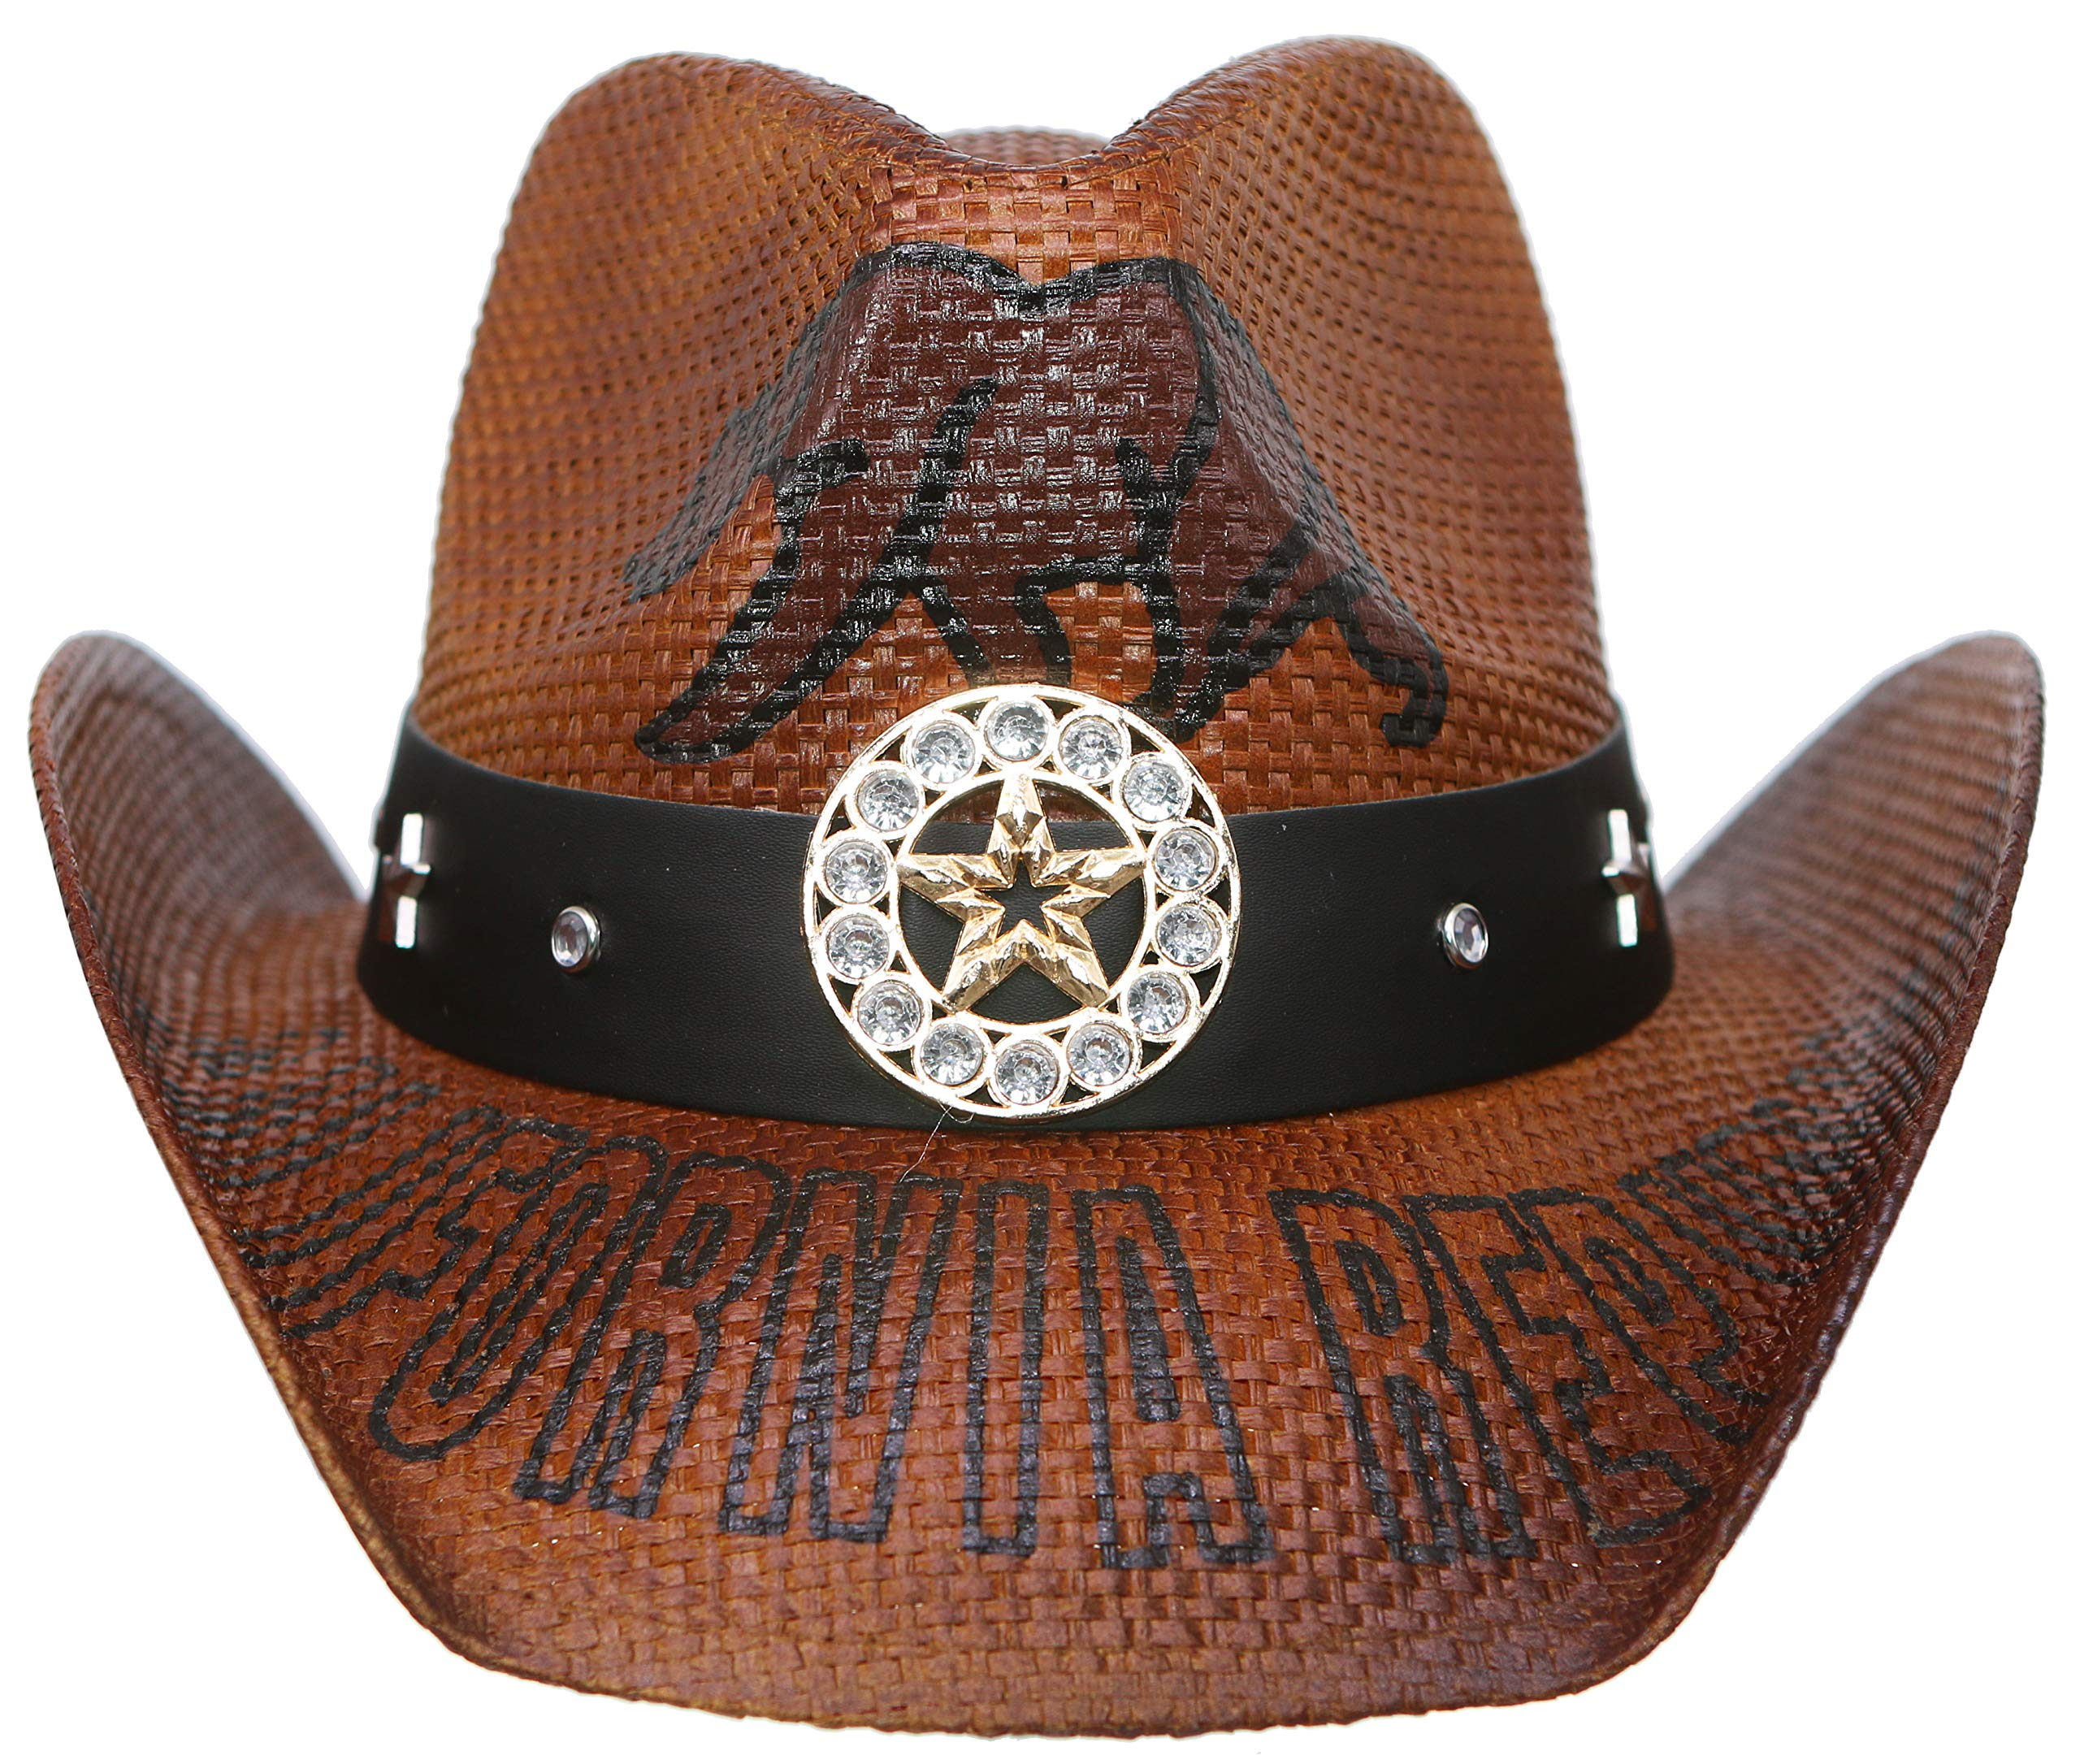 RufnTop Men's & Women's Western Vintage Style Cowboy Cowgirl Straw Hat w Band Décor(Cowboy 1) by RufnTop